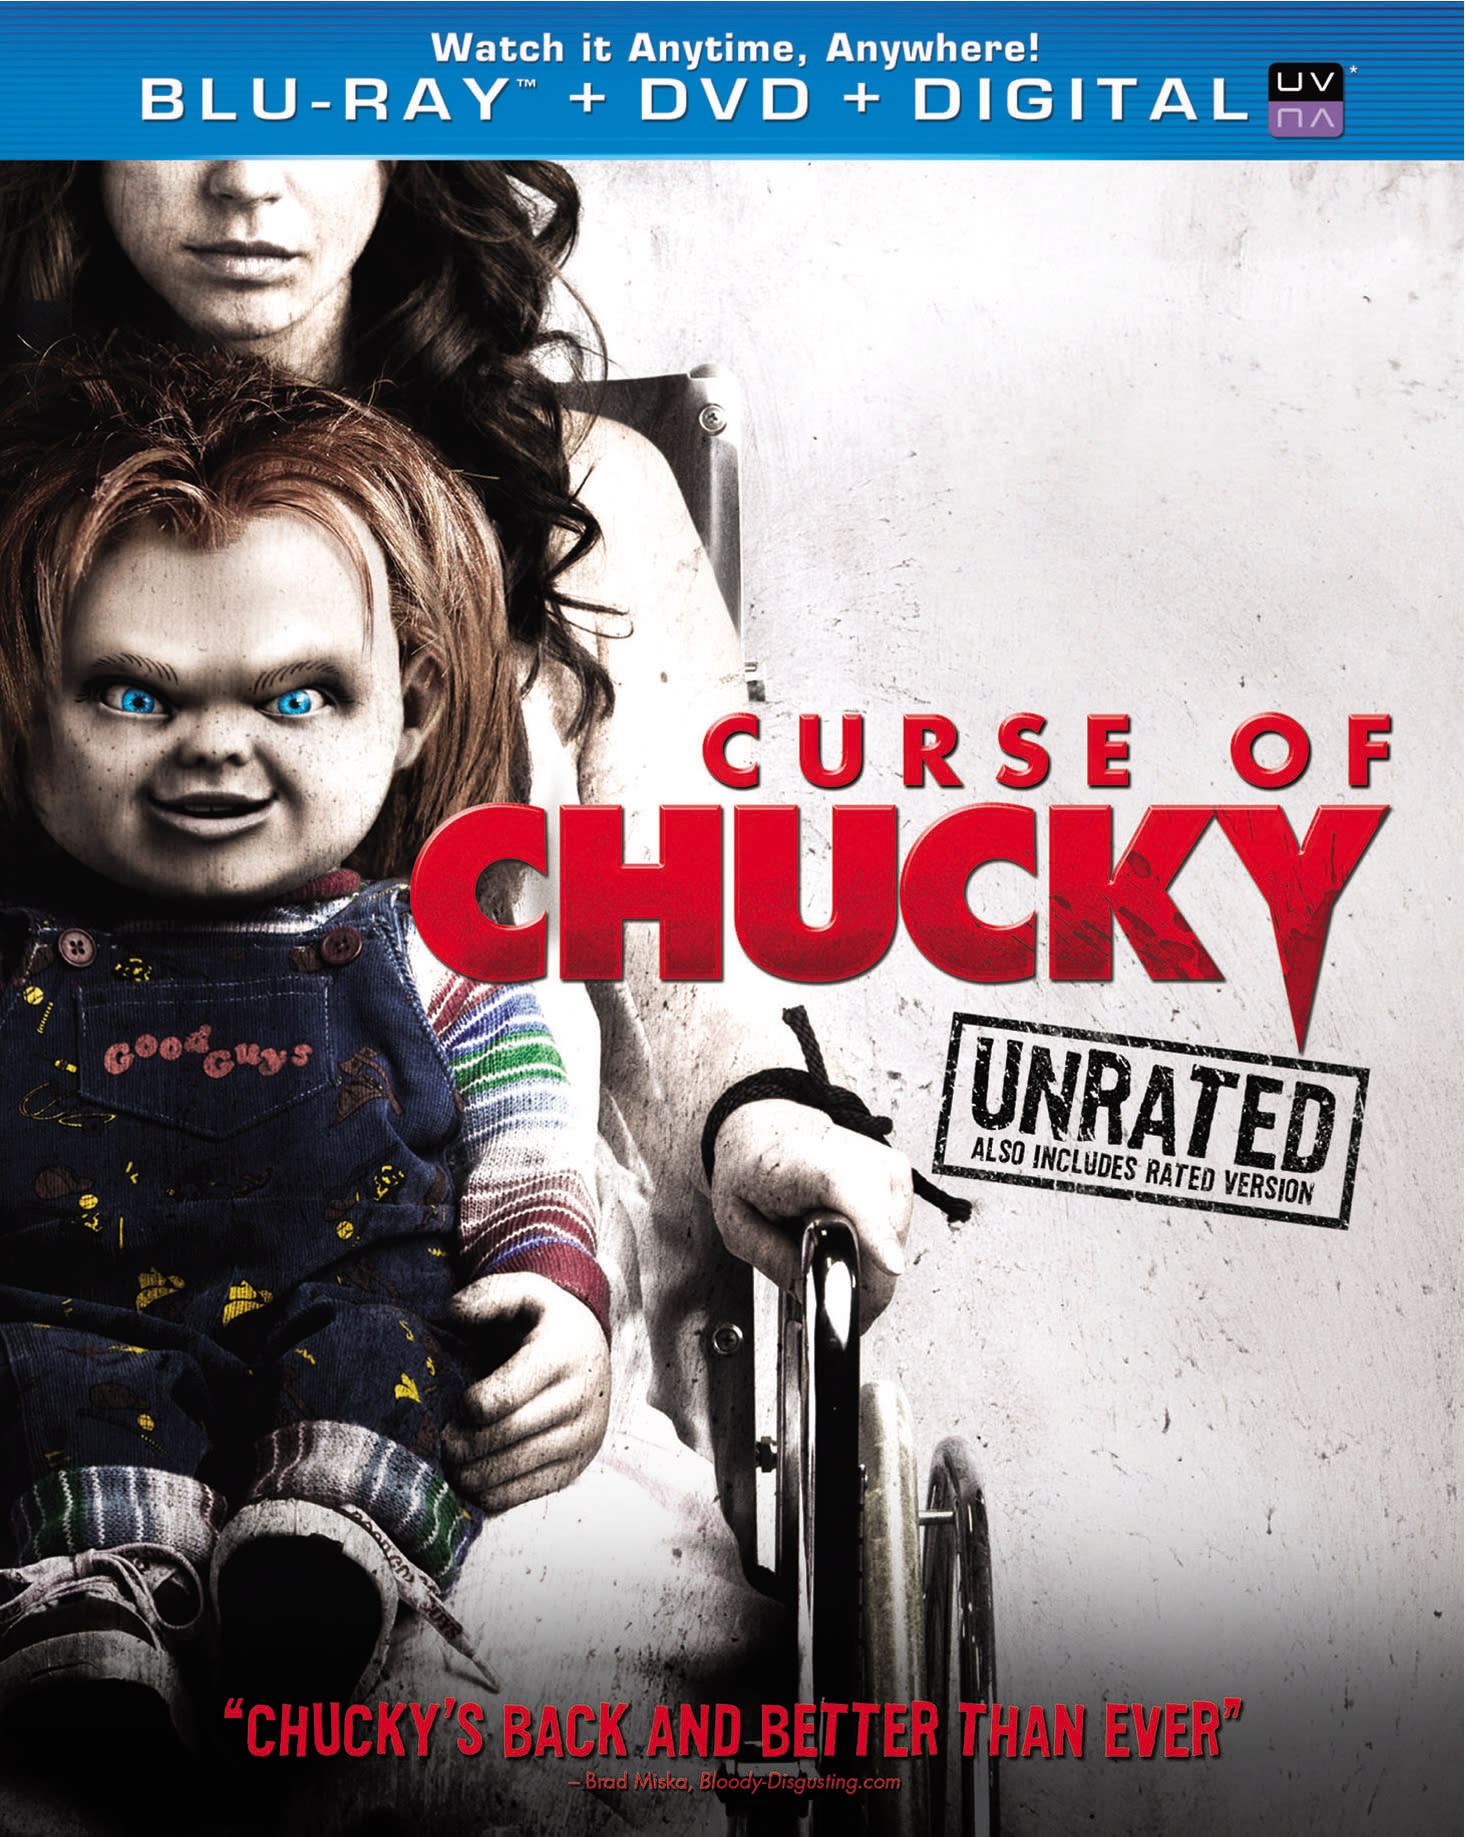 Curse of Chucky (Unrated + DVD + Digital) [Blu-ray]